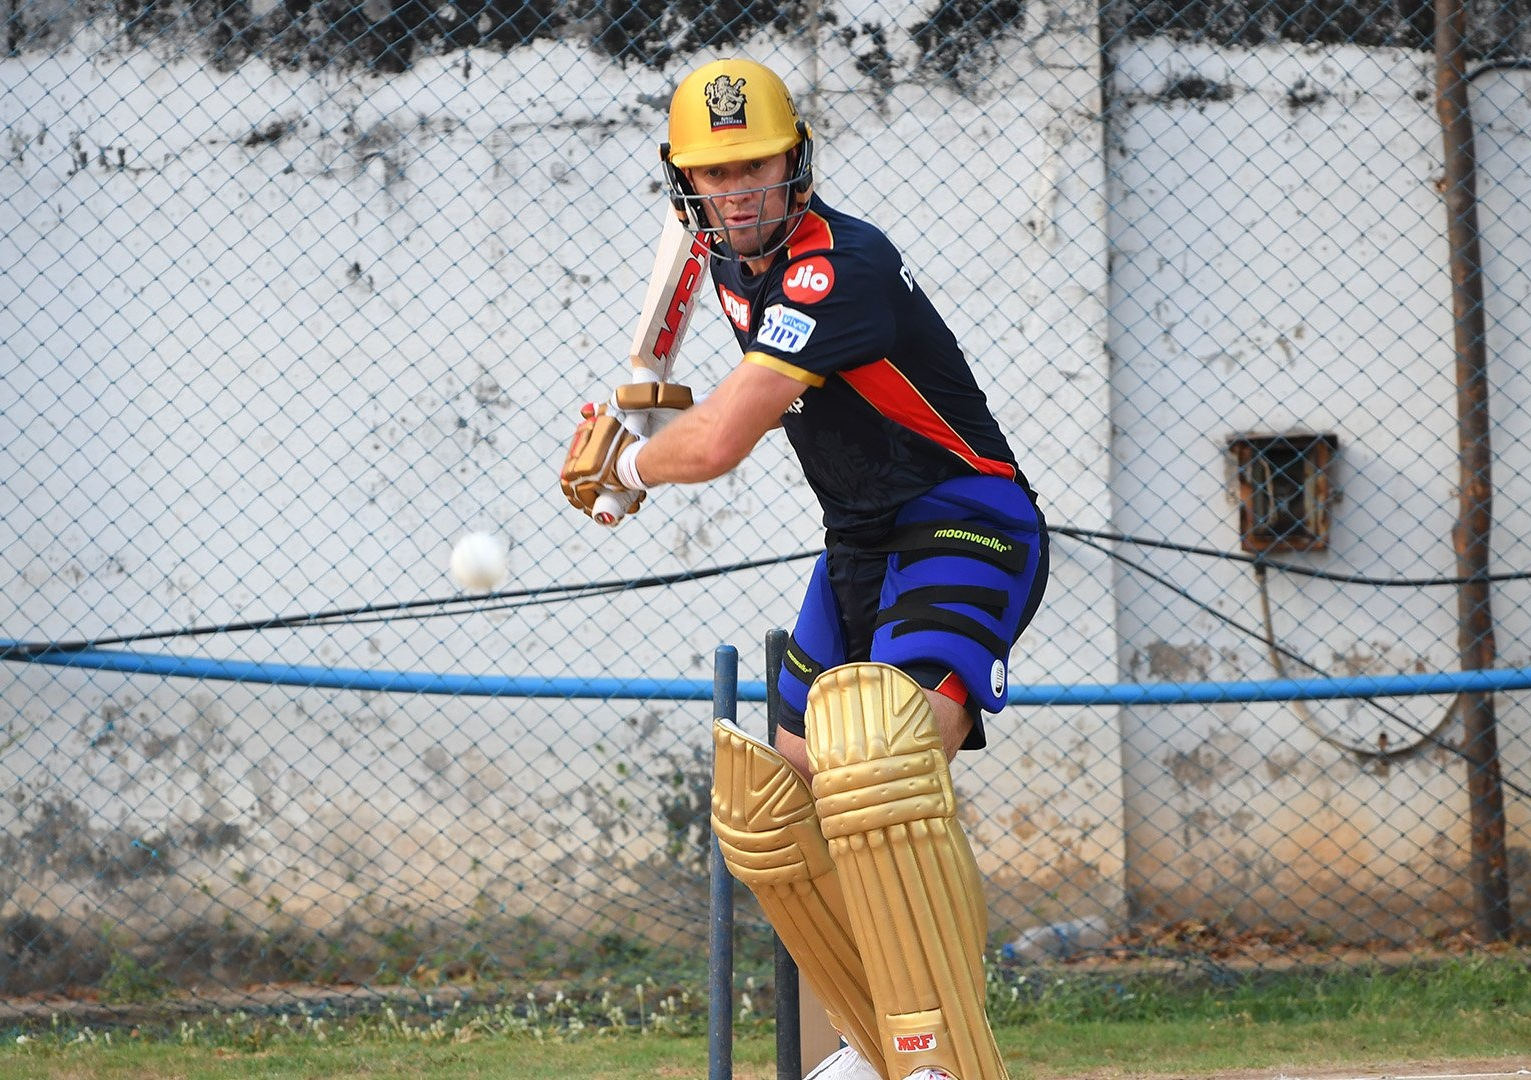 De Villiers is raring to go and play for RCB in the IPL 14 | RCB Twitter